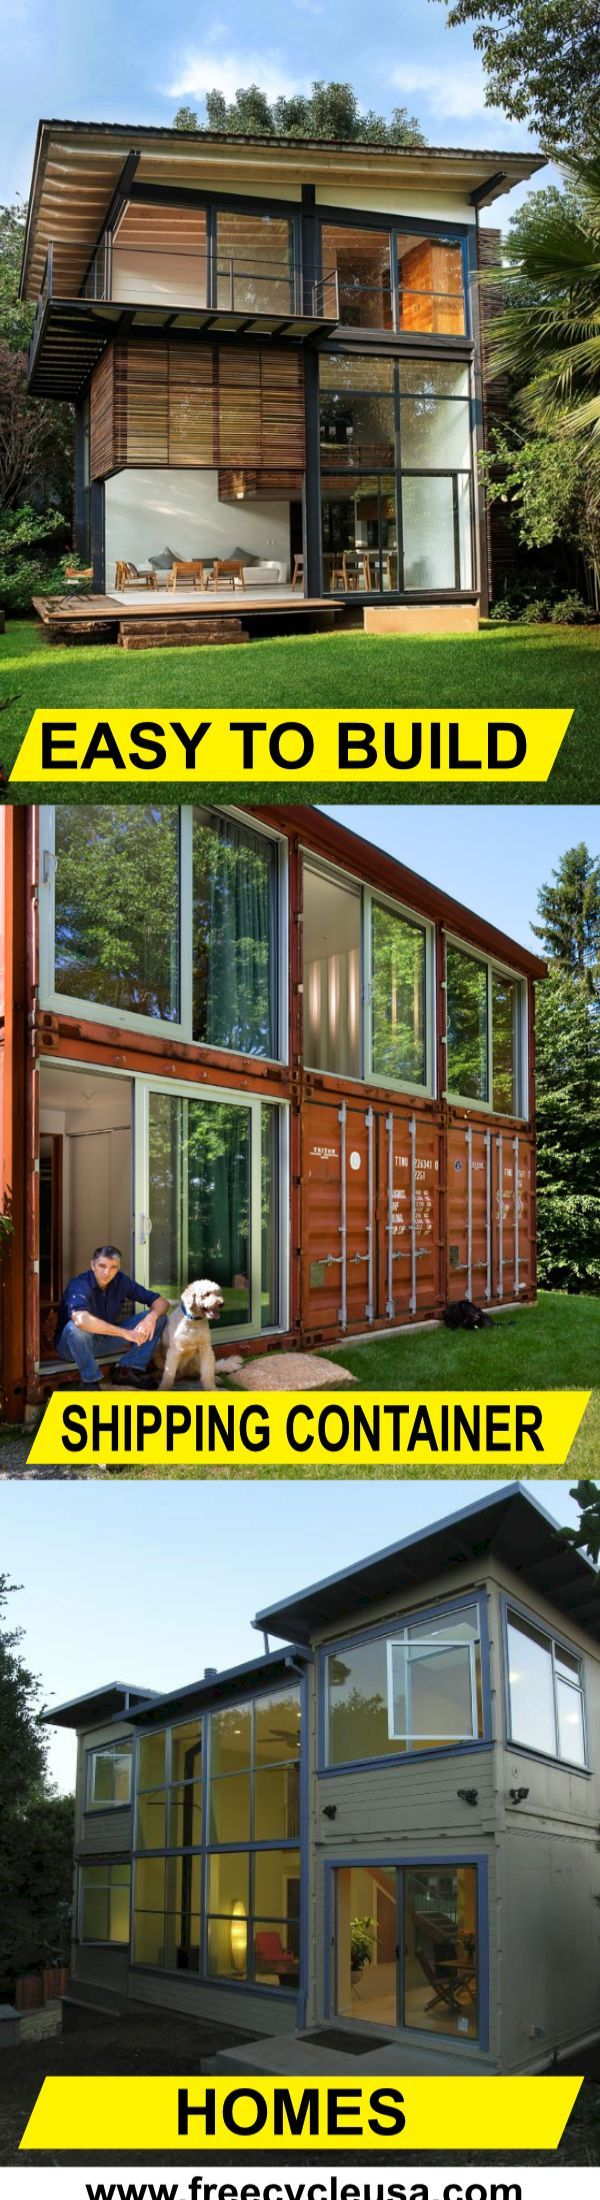 Best Kitchen Gallery: Lean How To Build A Shipping Container Home With The Best Plans of Purchase Shipping Container Home on rachelxblog.com